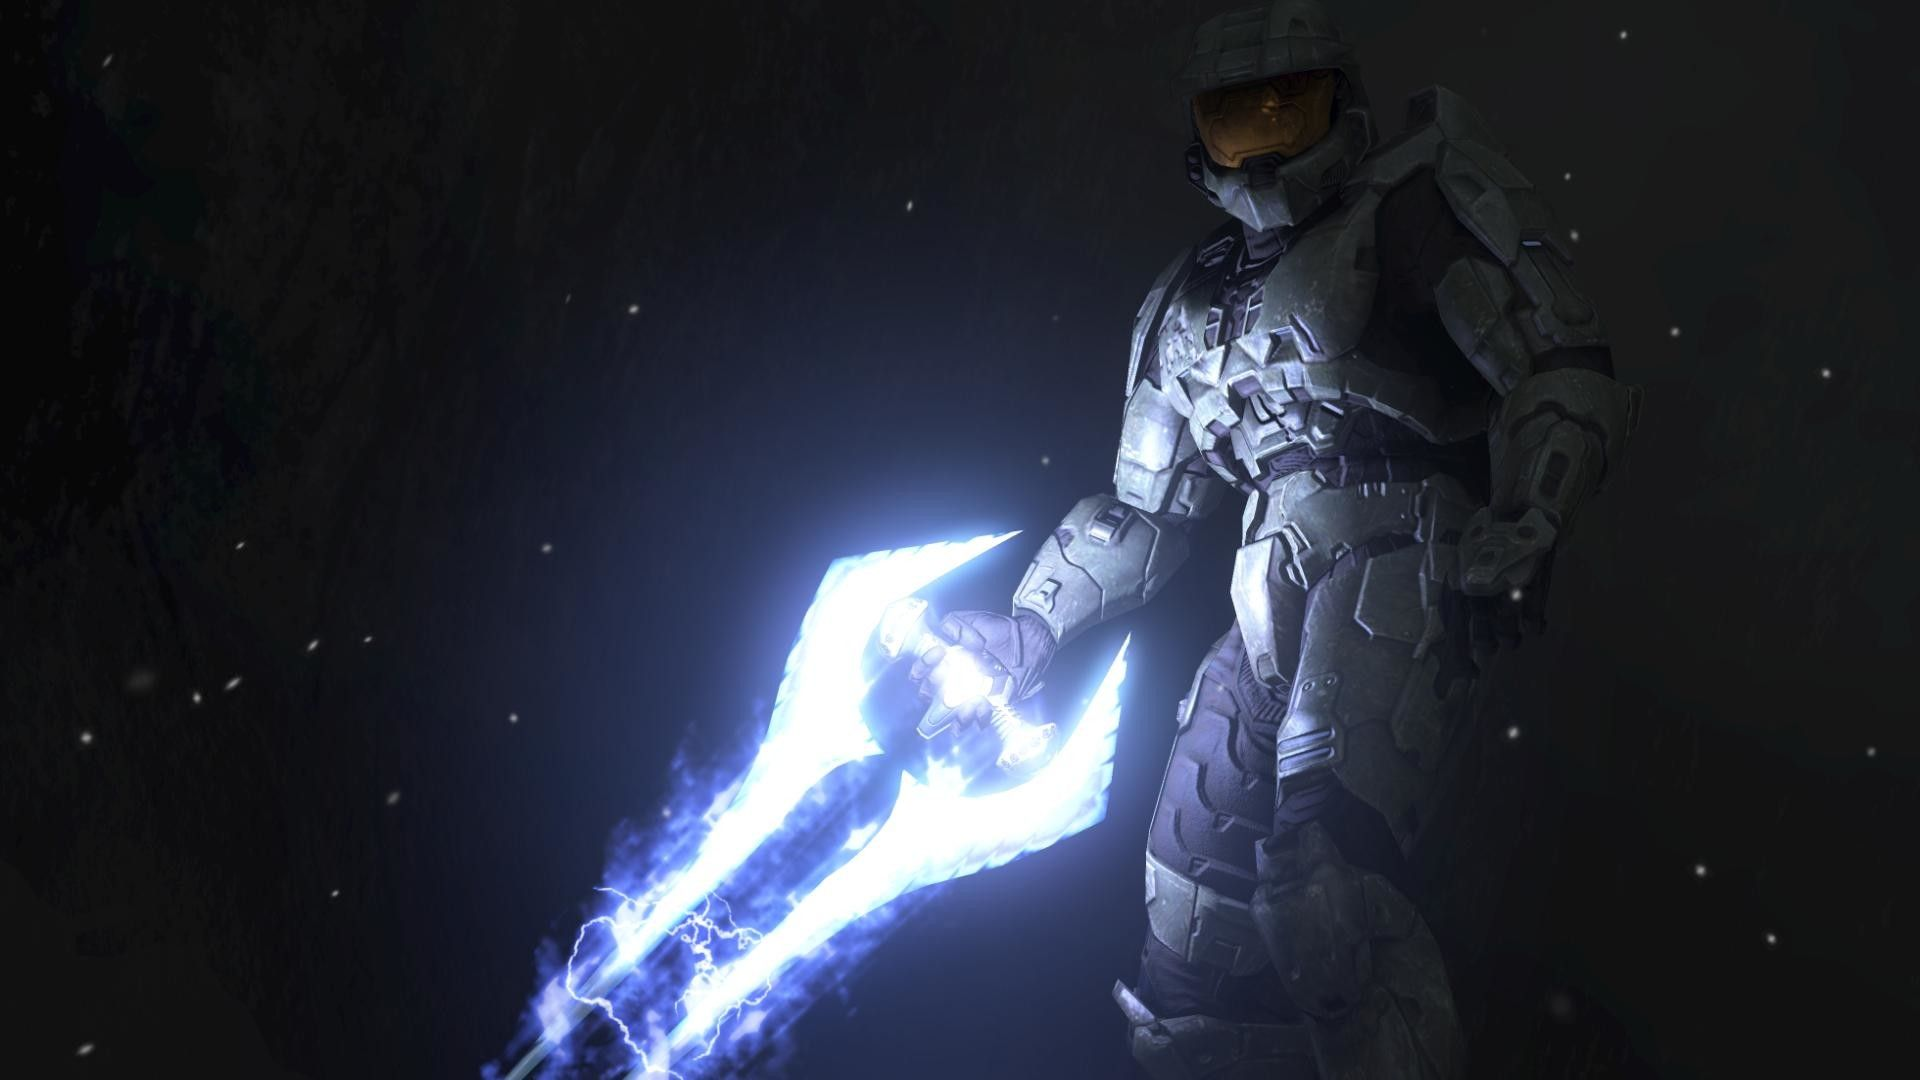 Video Game - Halo Wallpaper 1920x1080 | fotos | Halo master chief